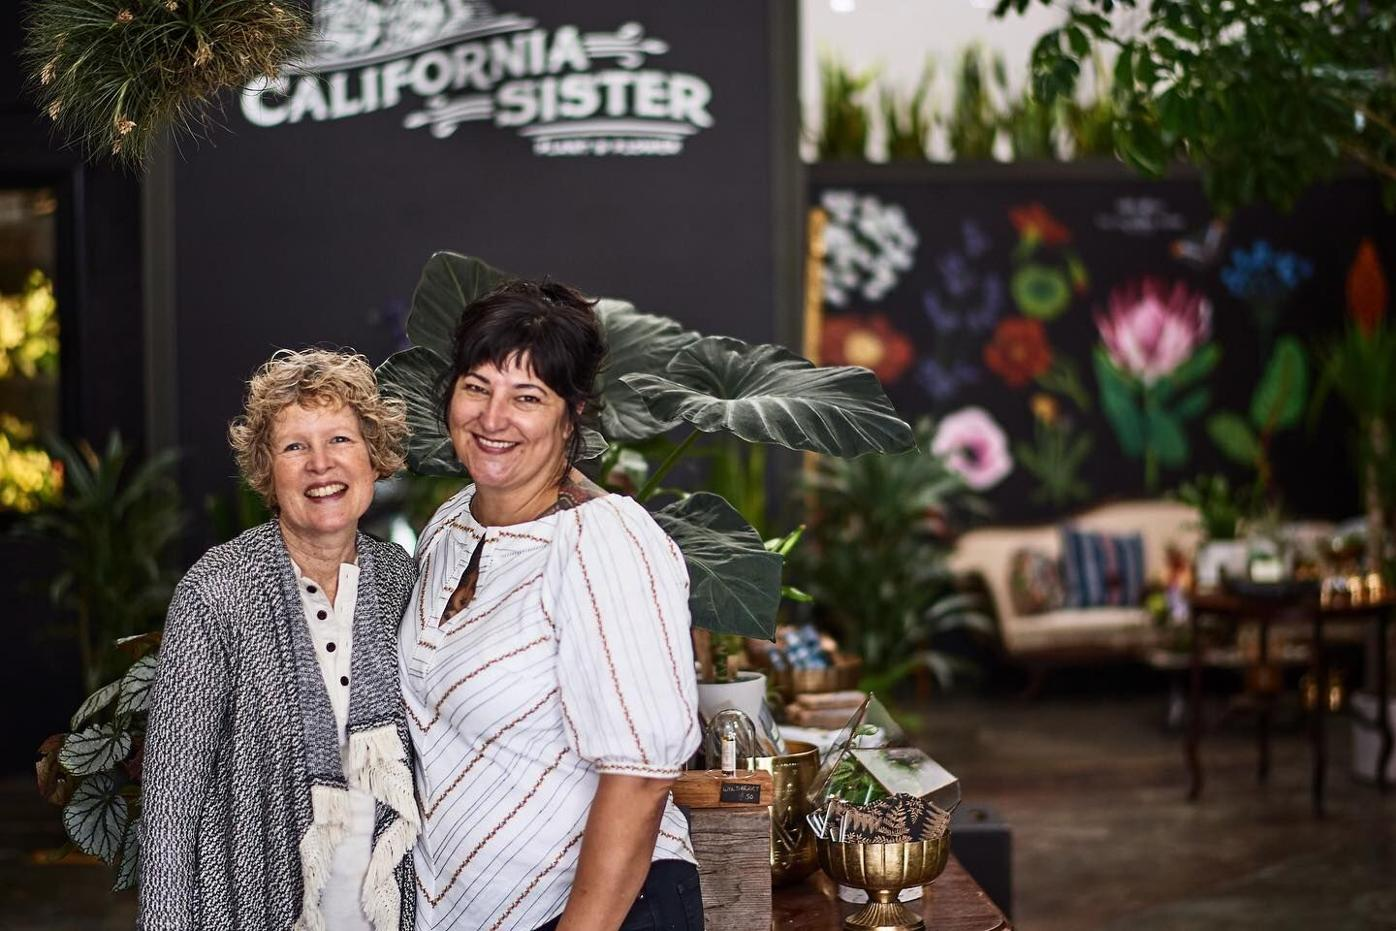 California Sister co-owners Kathrin Green and Nichole Skalski